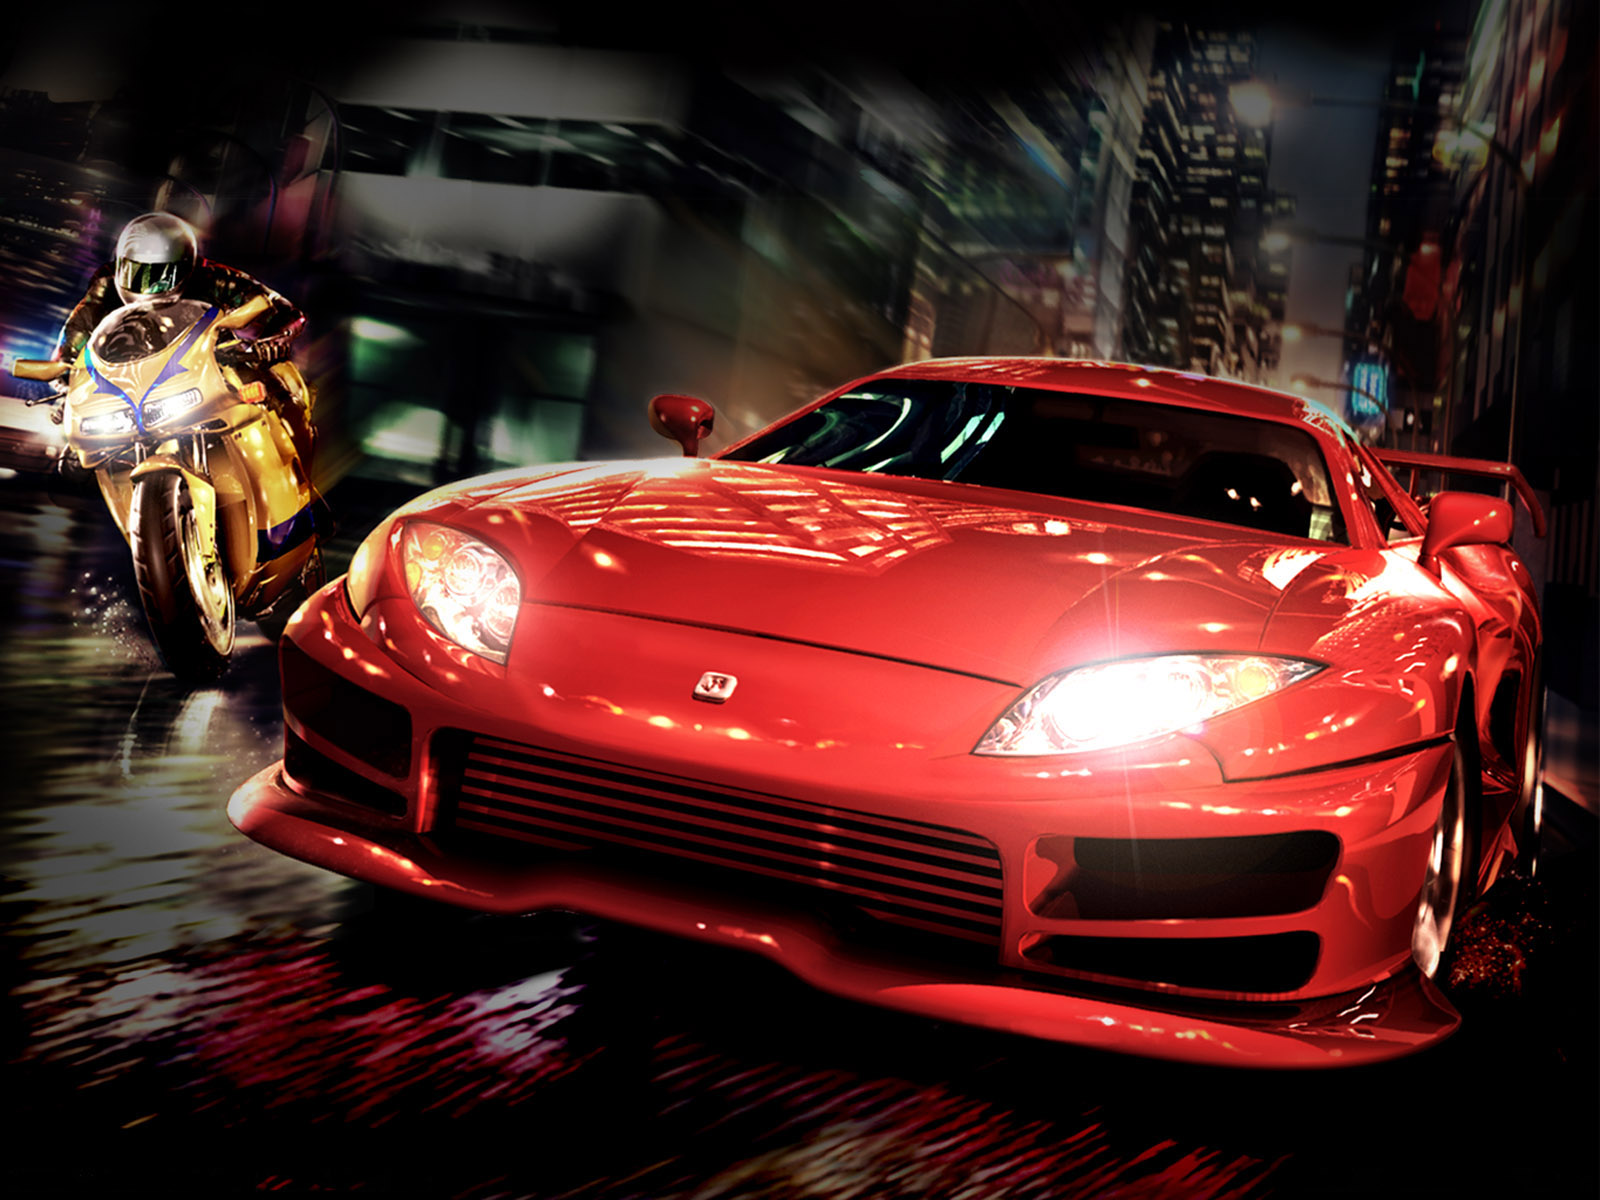 Hot car wallpaper free wallpapers for pc - Free car wallpaper download for laptop ...